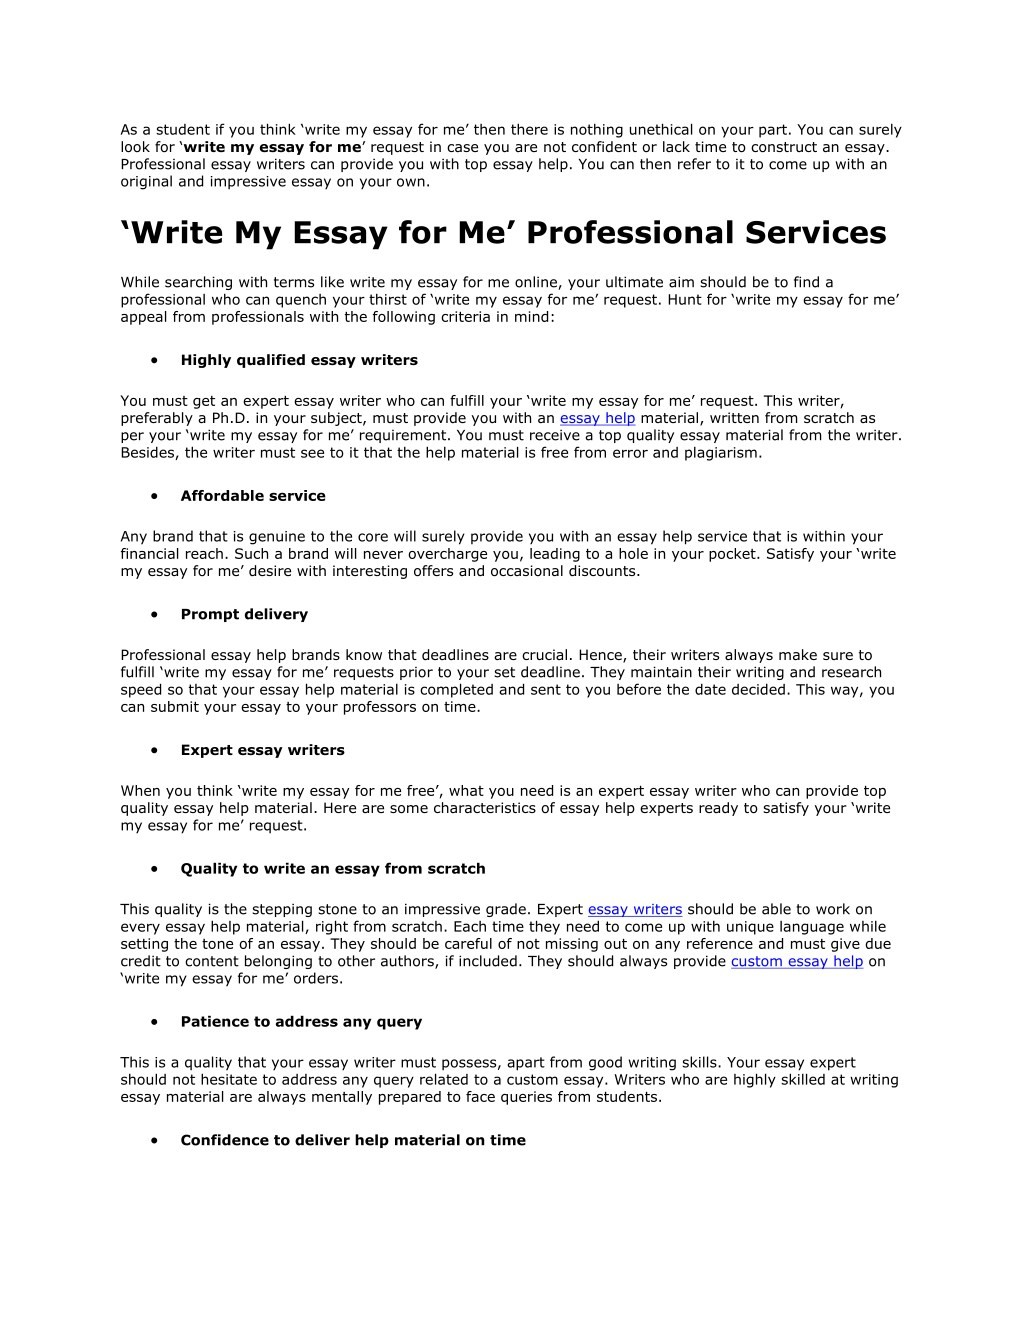 017 Write My Essay For Me Example As Student If You Think Surprising Discount Code Cheap Please Large